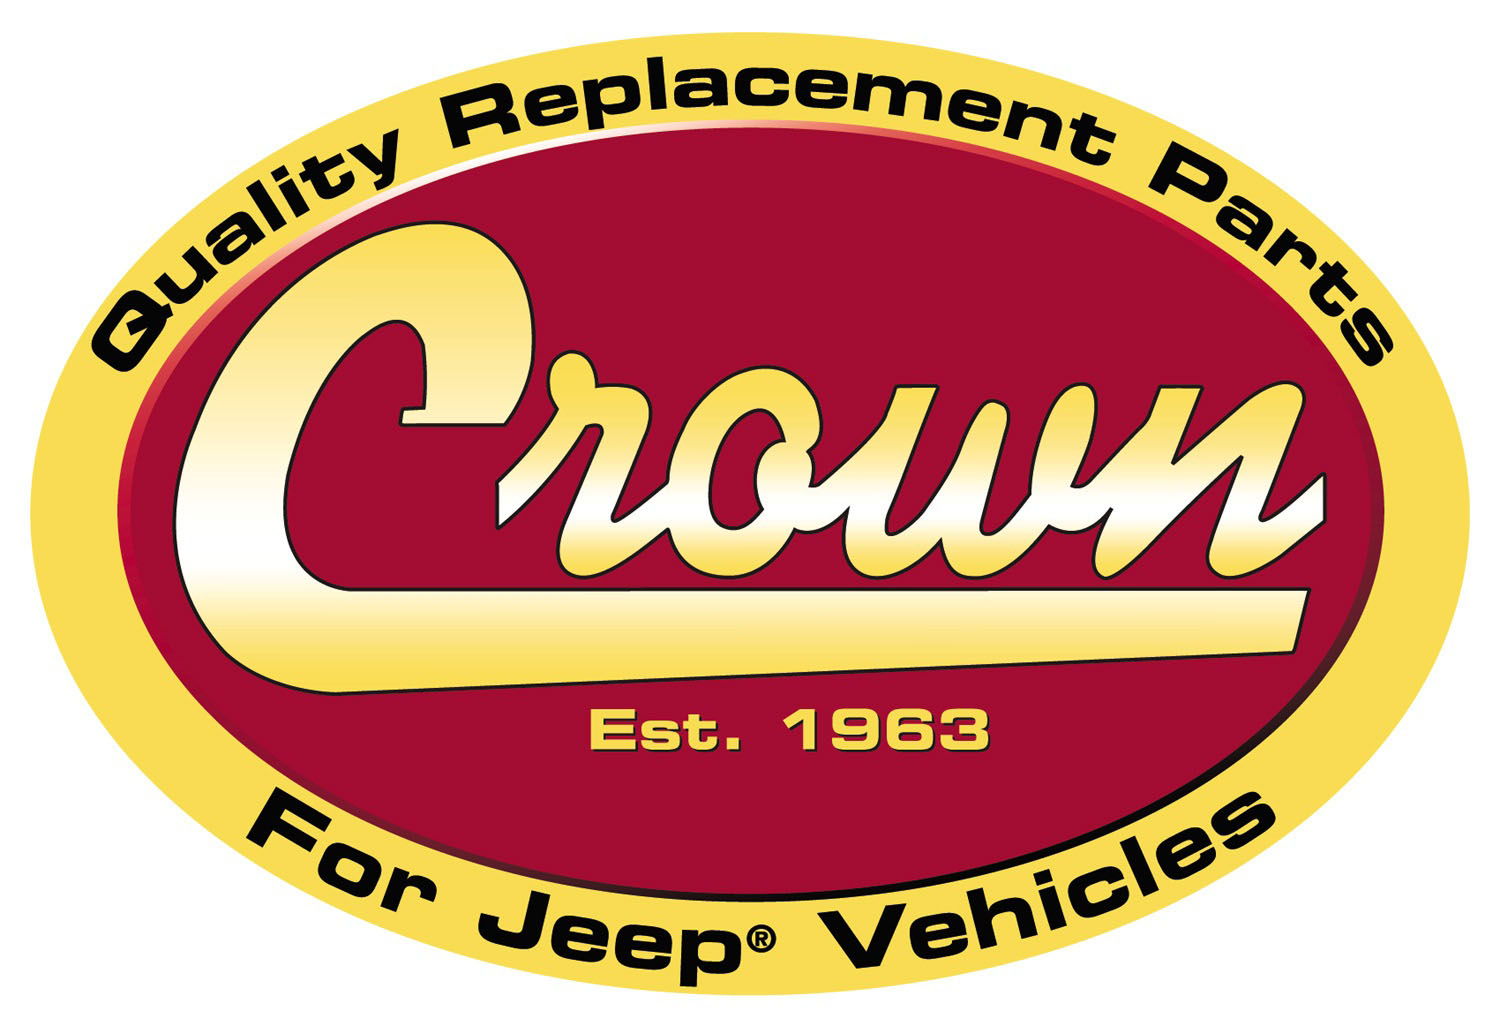 CROWN AUTOMOTIVE SALES CO.